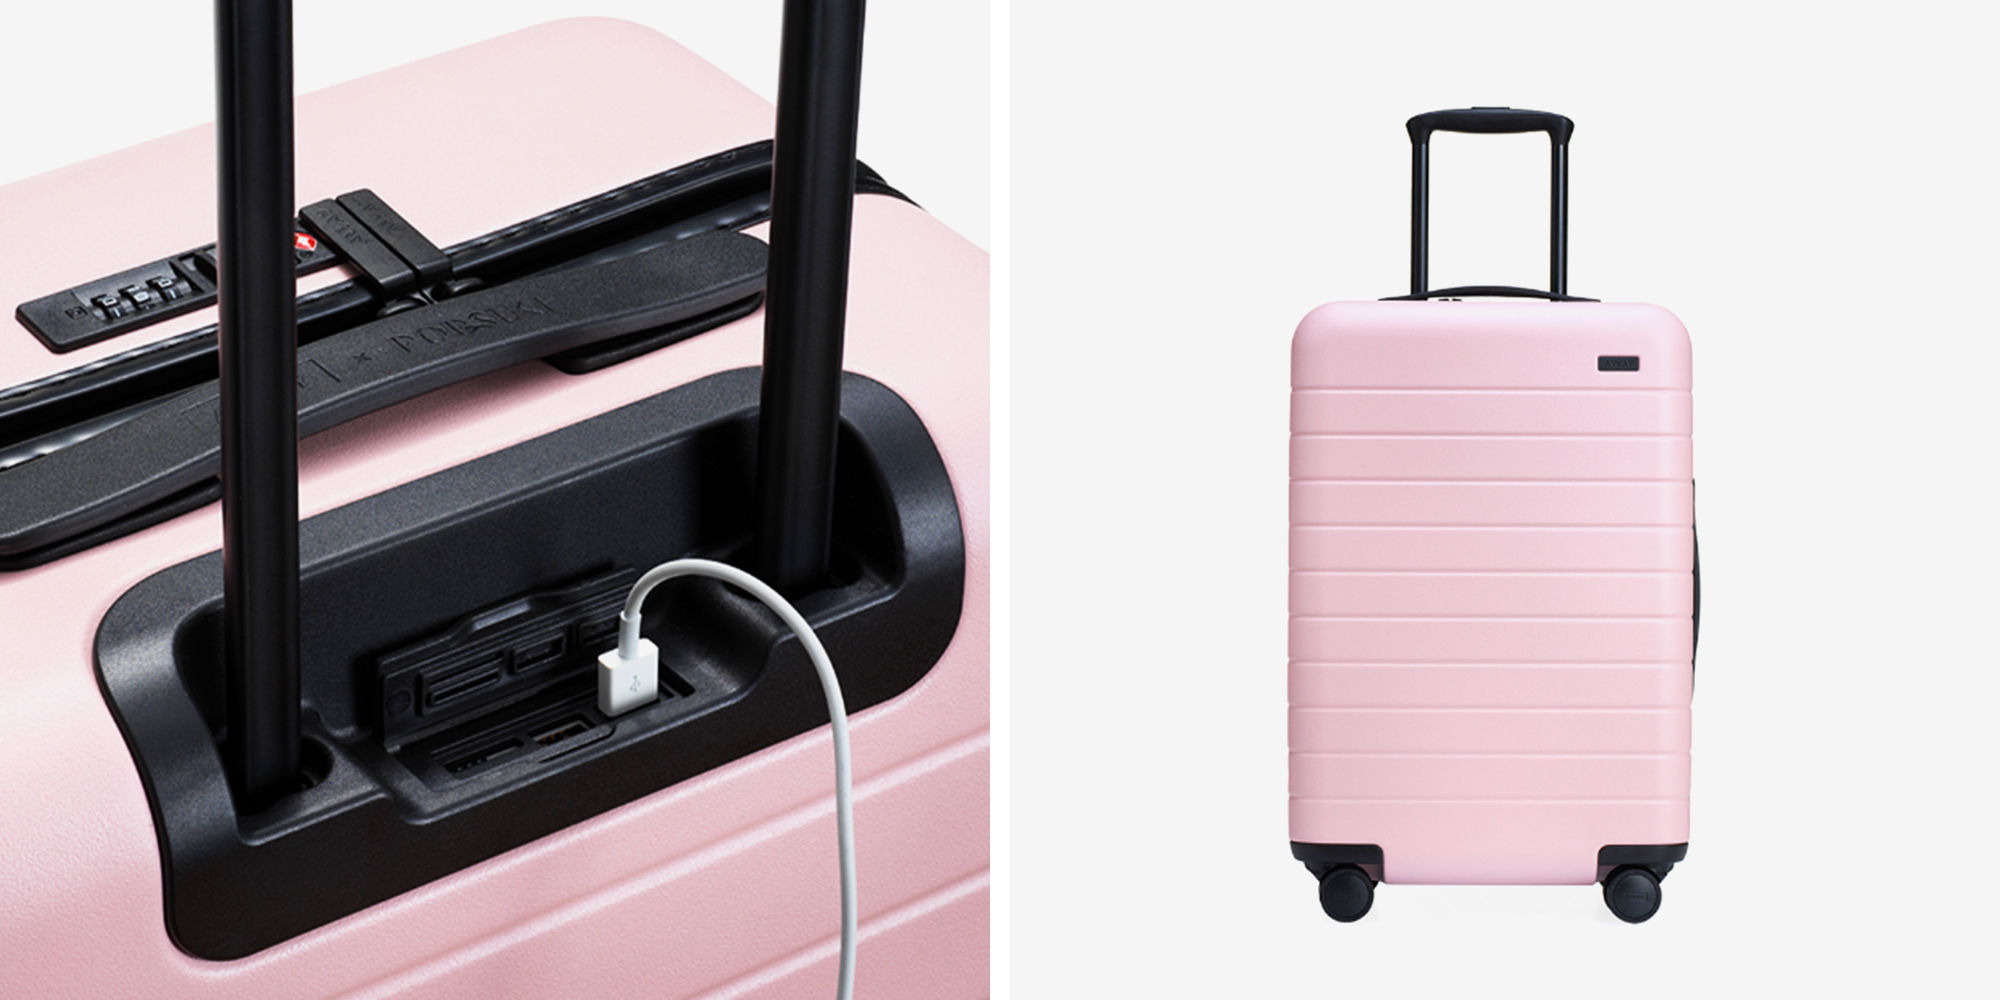 7 Best Smart Luggage Products for 2018 Reviews for Smart  : 1492026174 smart luggage from www.bestproducts.com size 2000 x 1000 jpeg 561kB